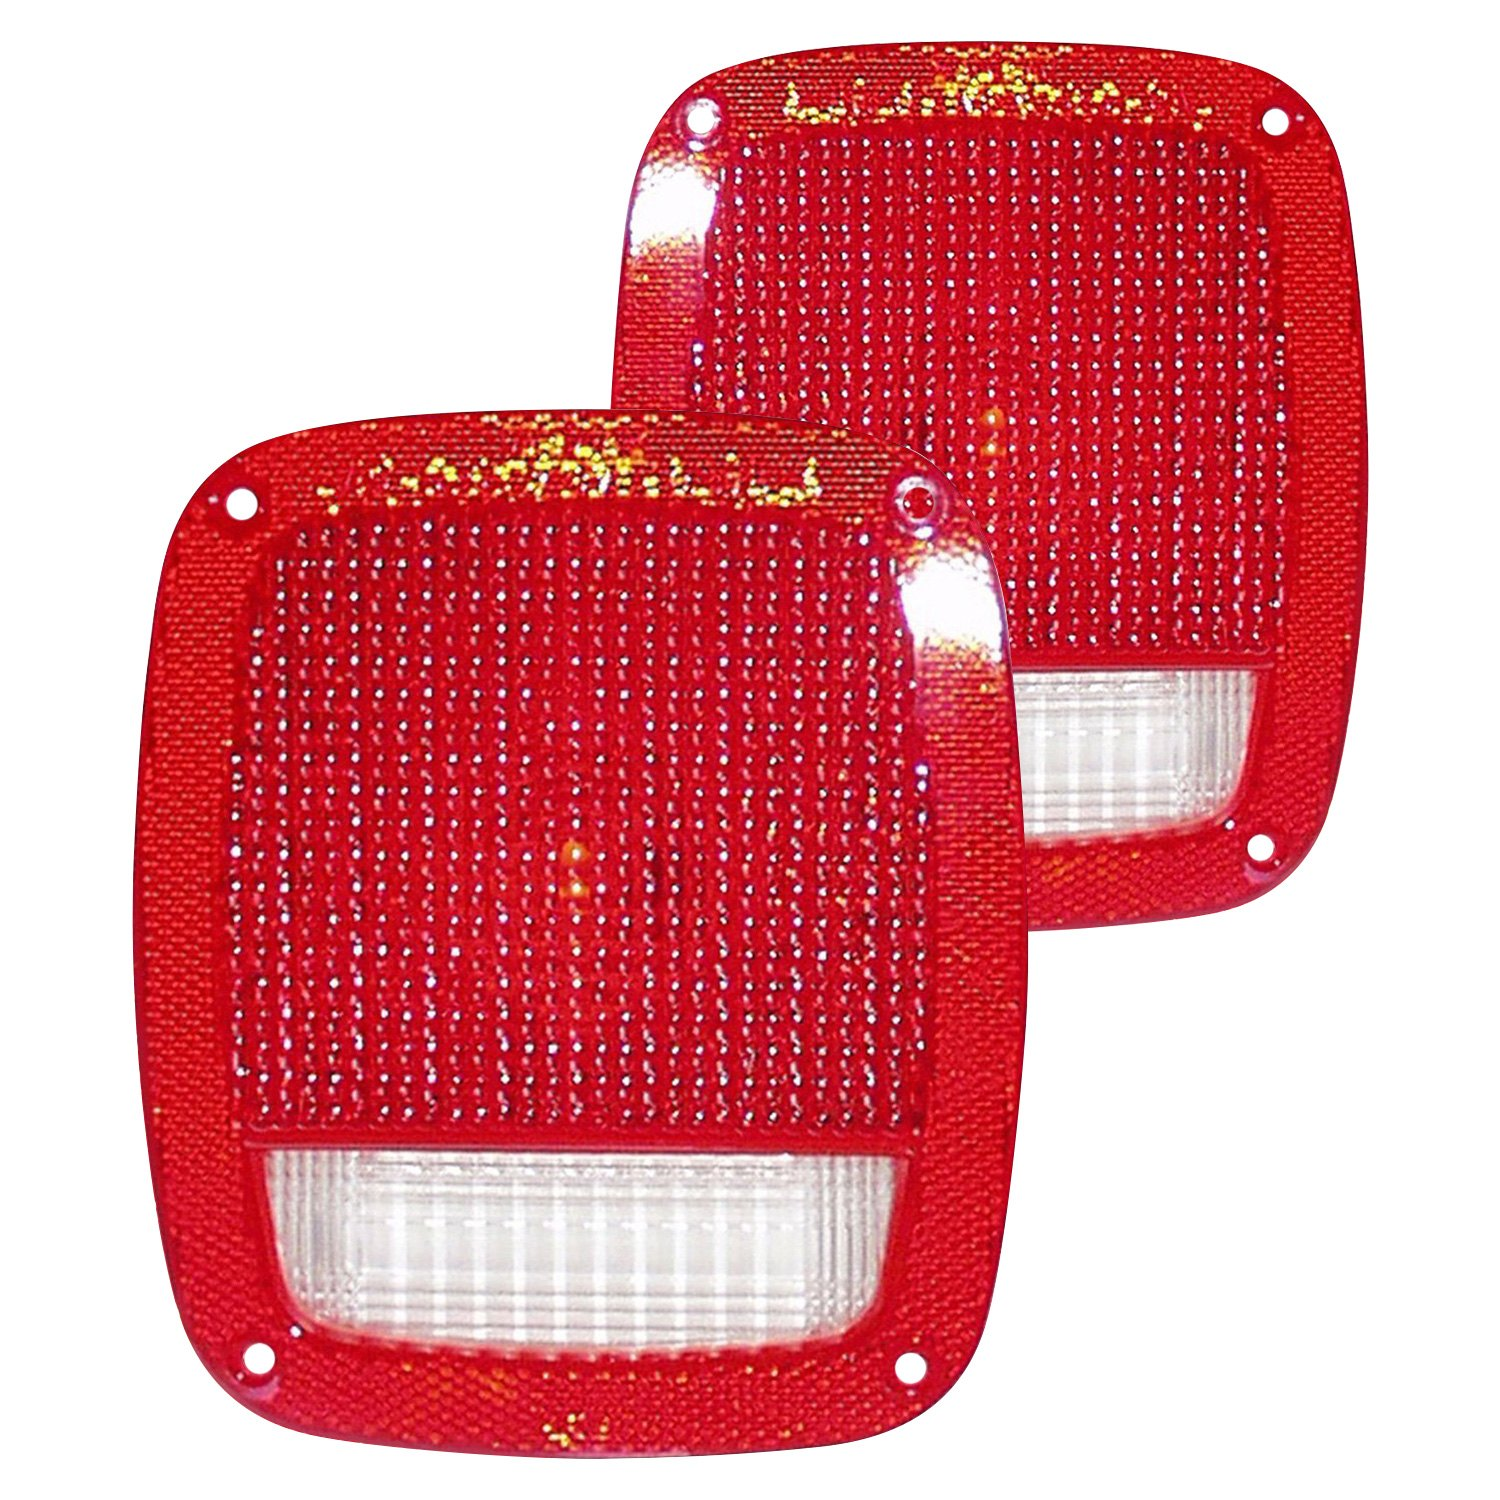 Tail Light Lens Replacement : Crown factory replacement tail light lenses